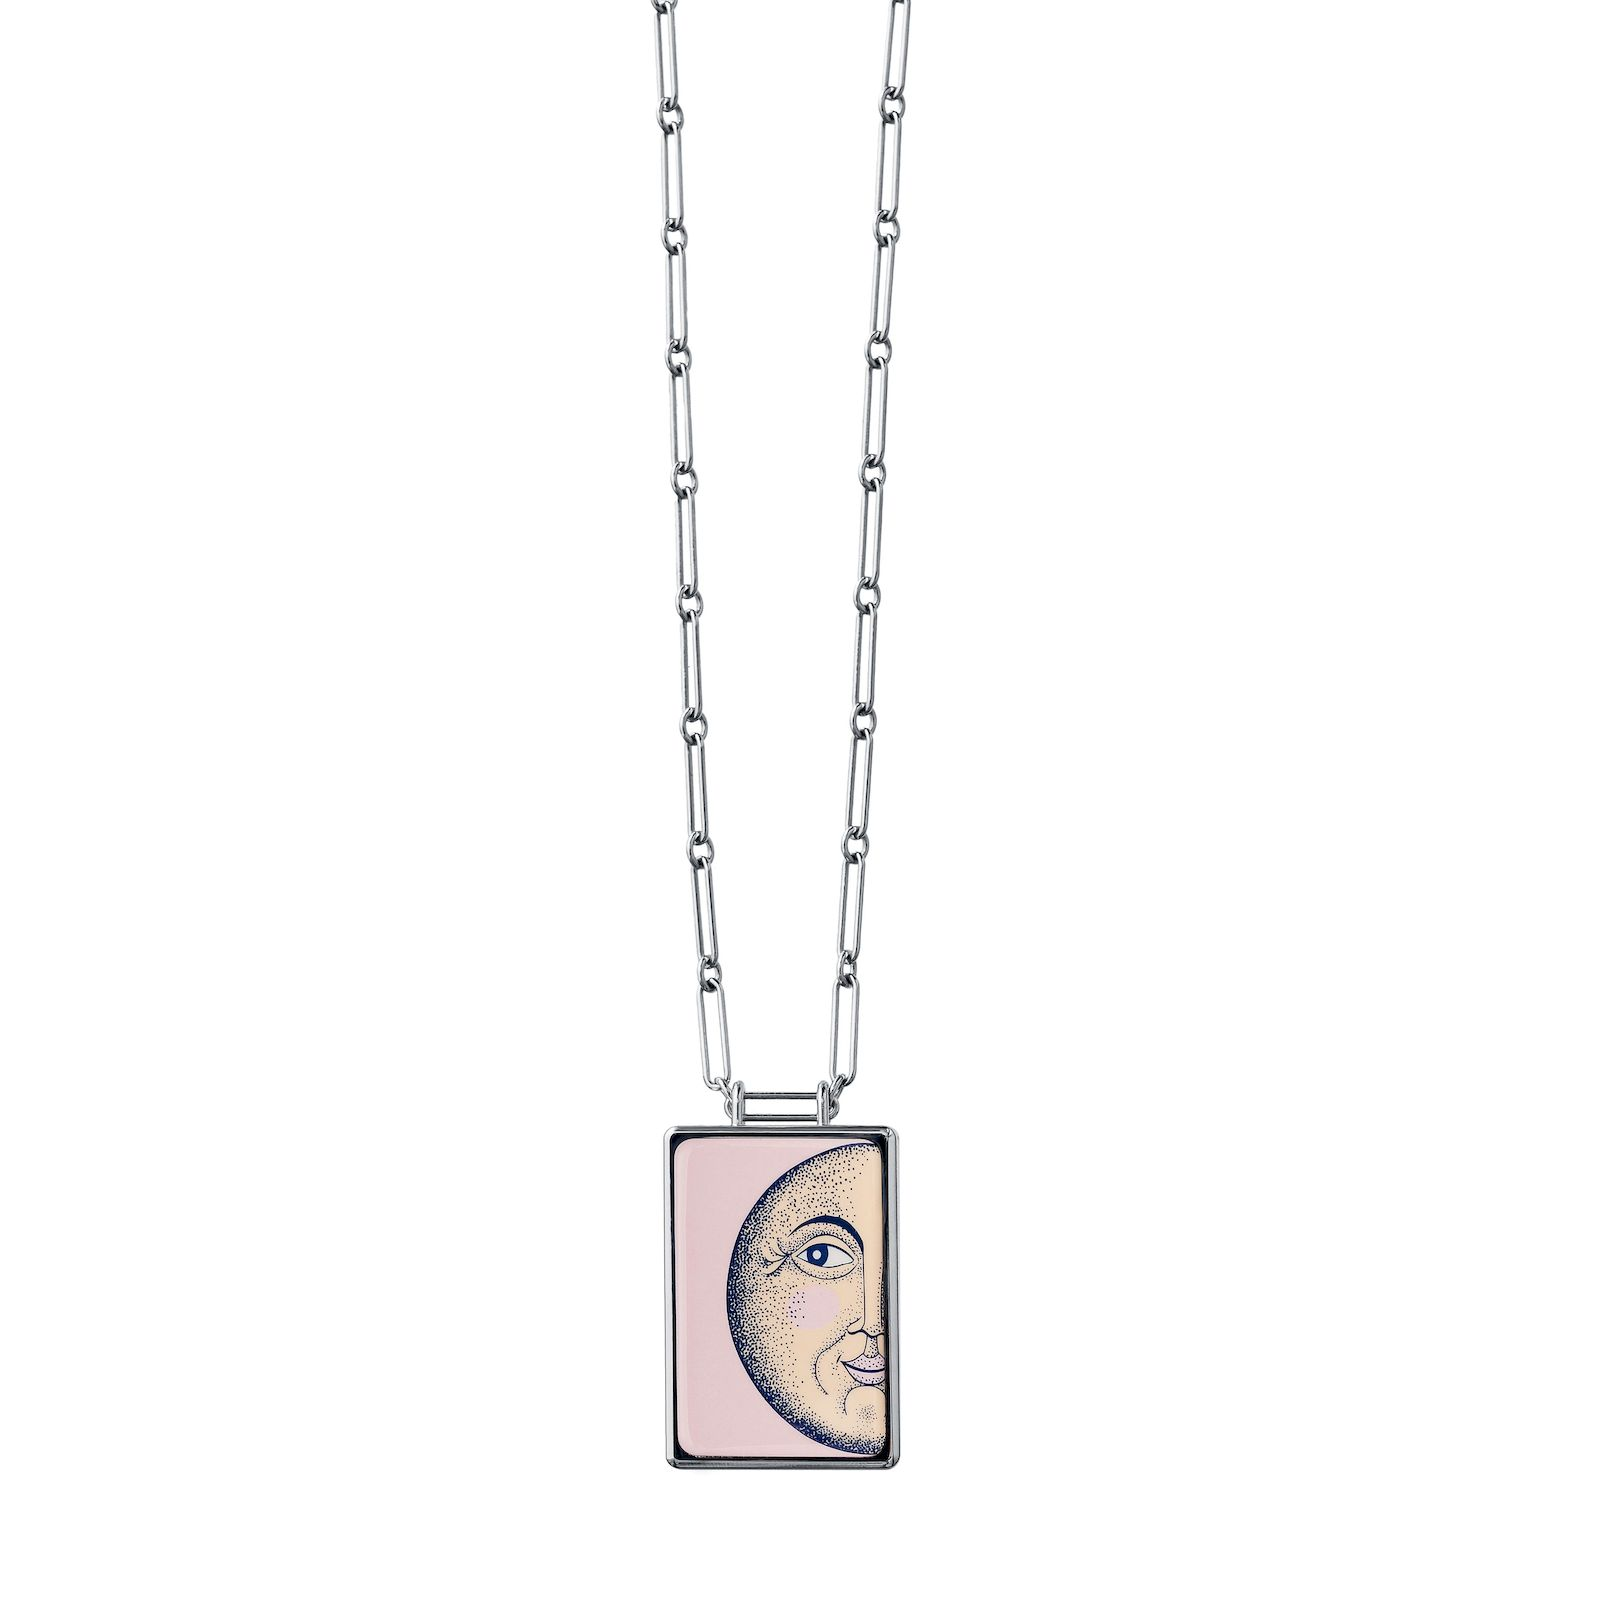 Hermes pendant in enamelled steel